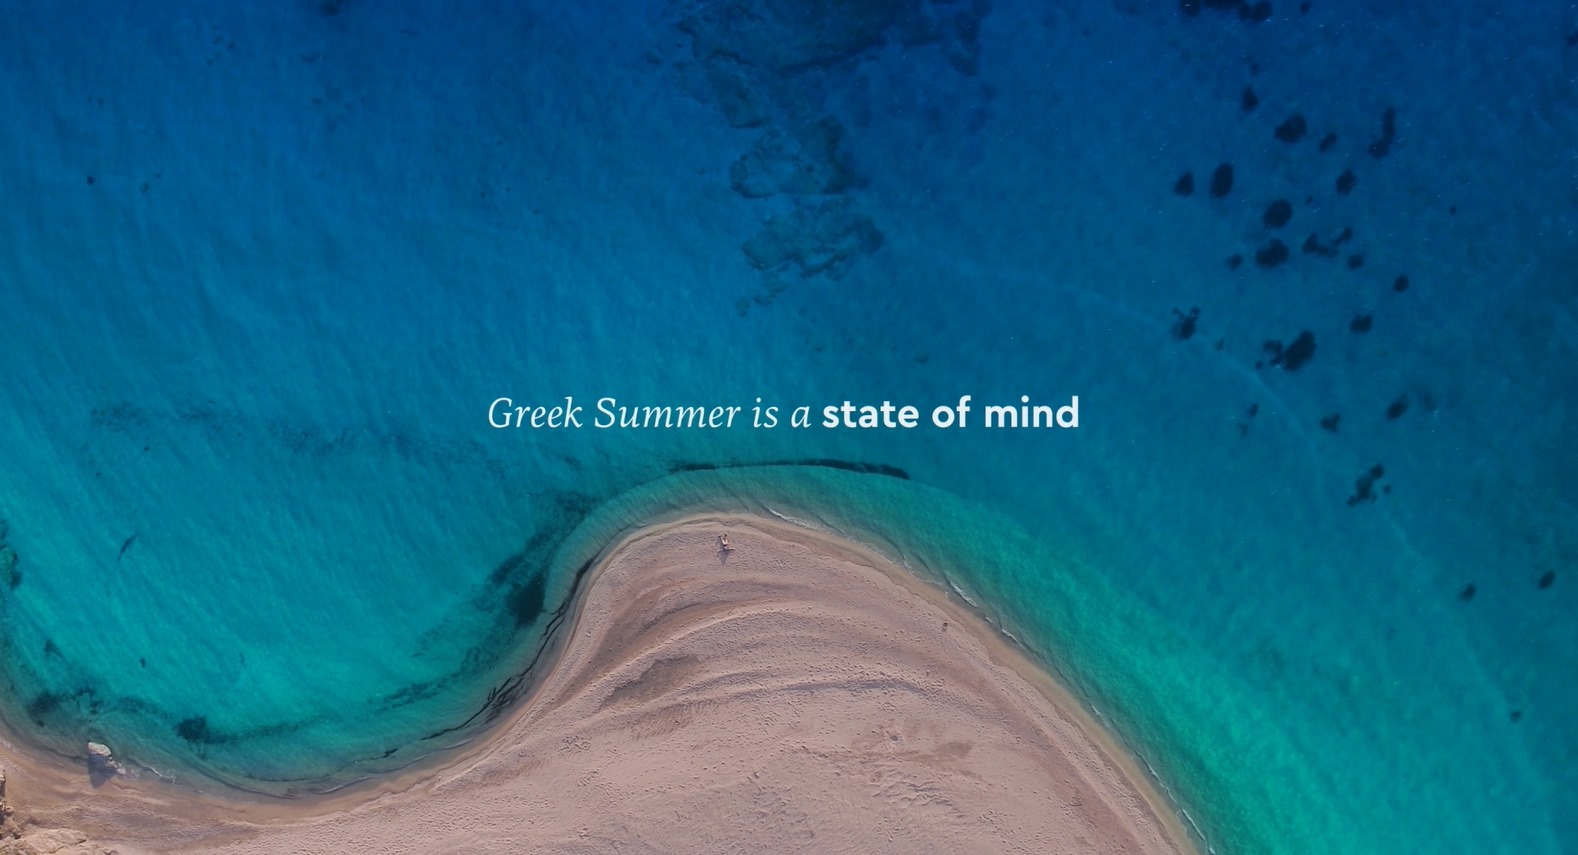 «Greek Summer is a state of mind» (video)